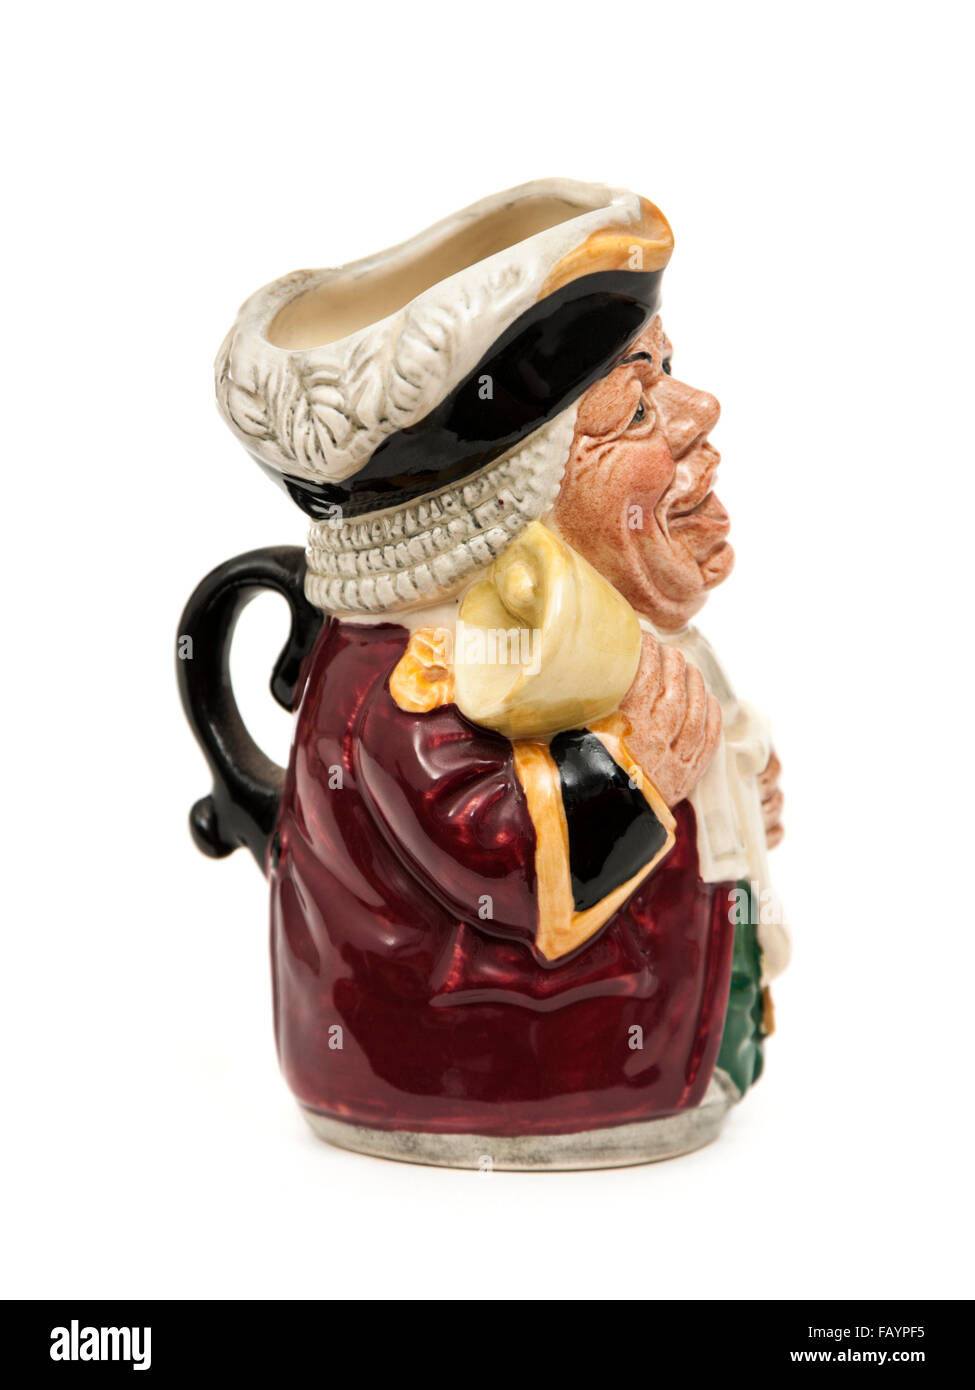 Vintage Toby / character jug (D6713) 'Mr Tonsil, The Town Crier' by Royal Doulton. Designed by William K. - Stock Image